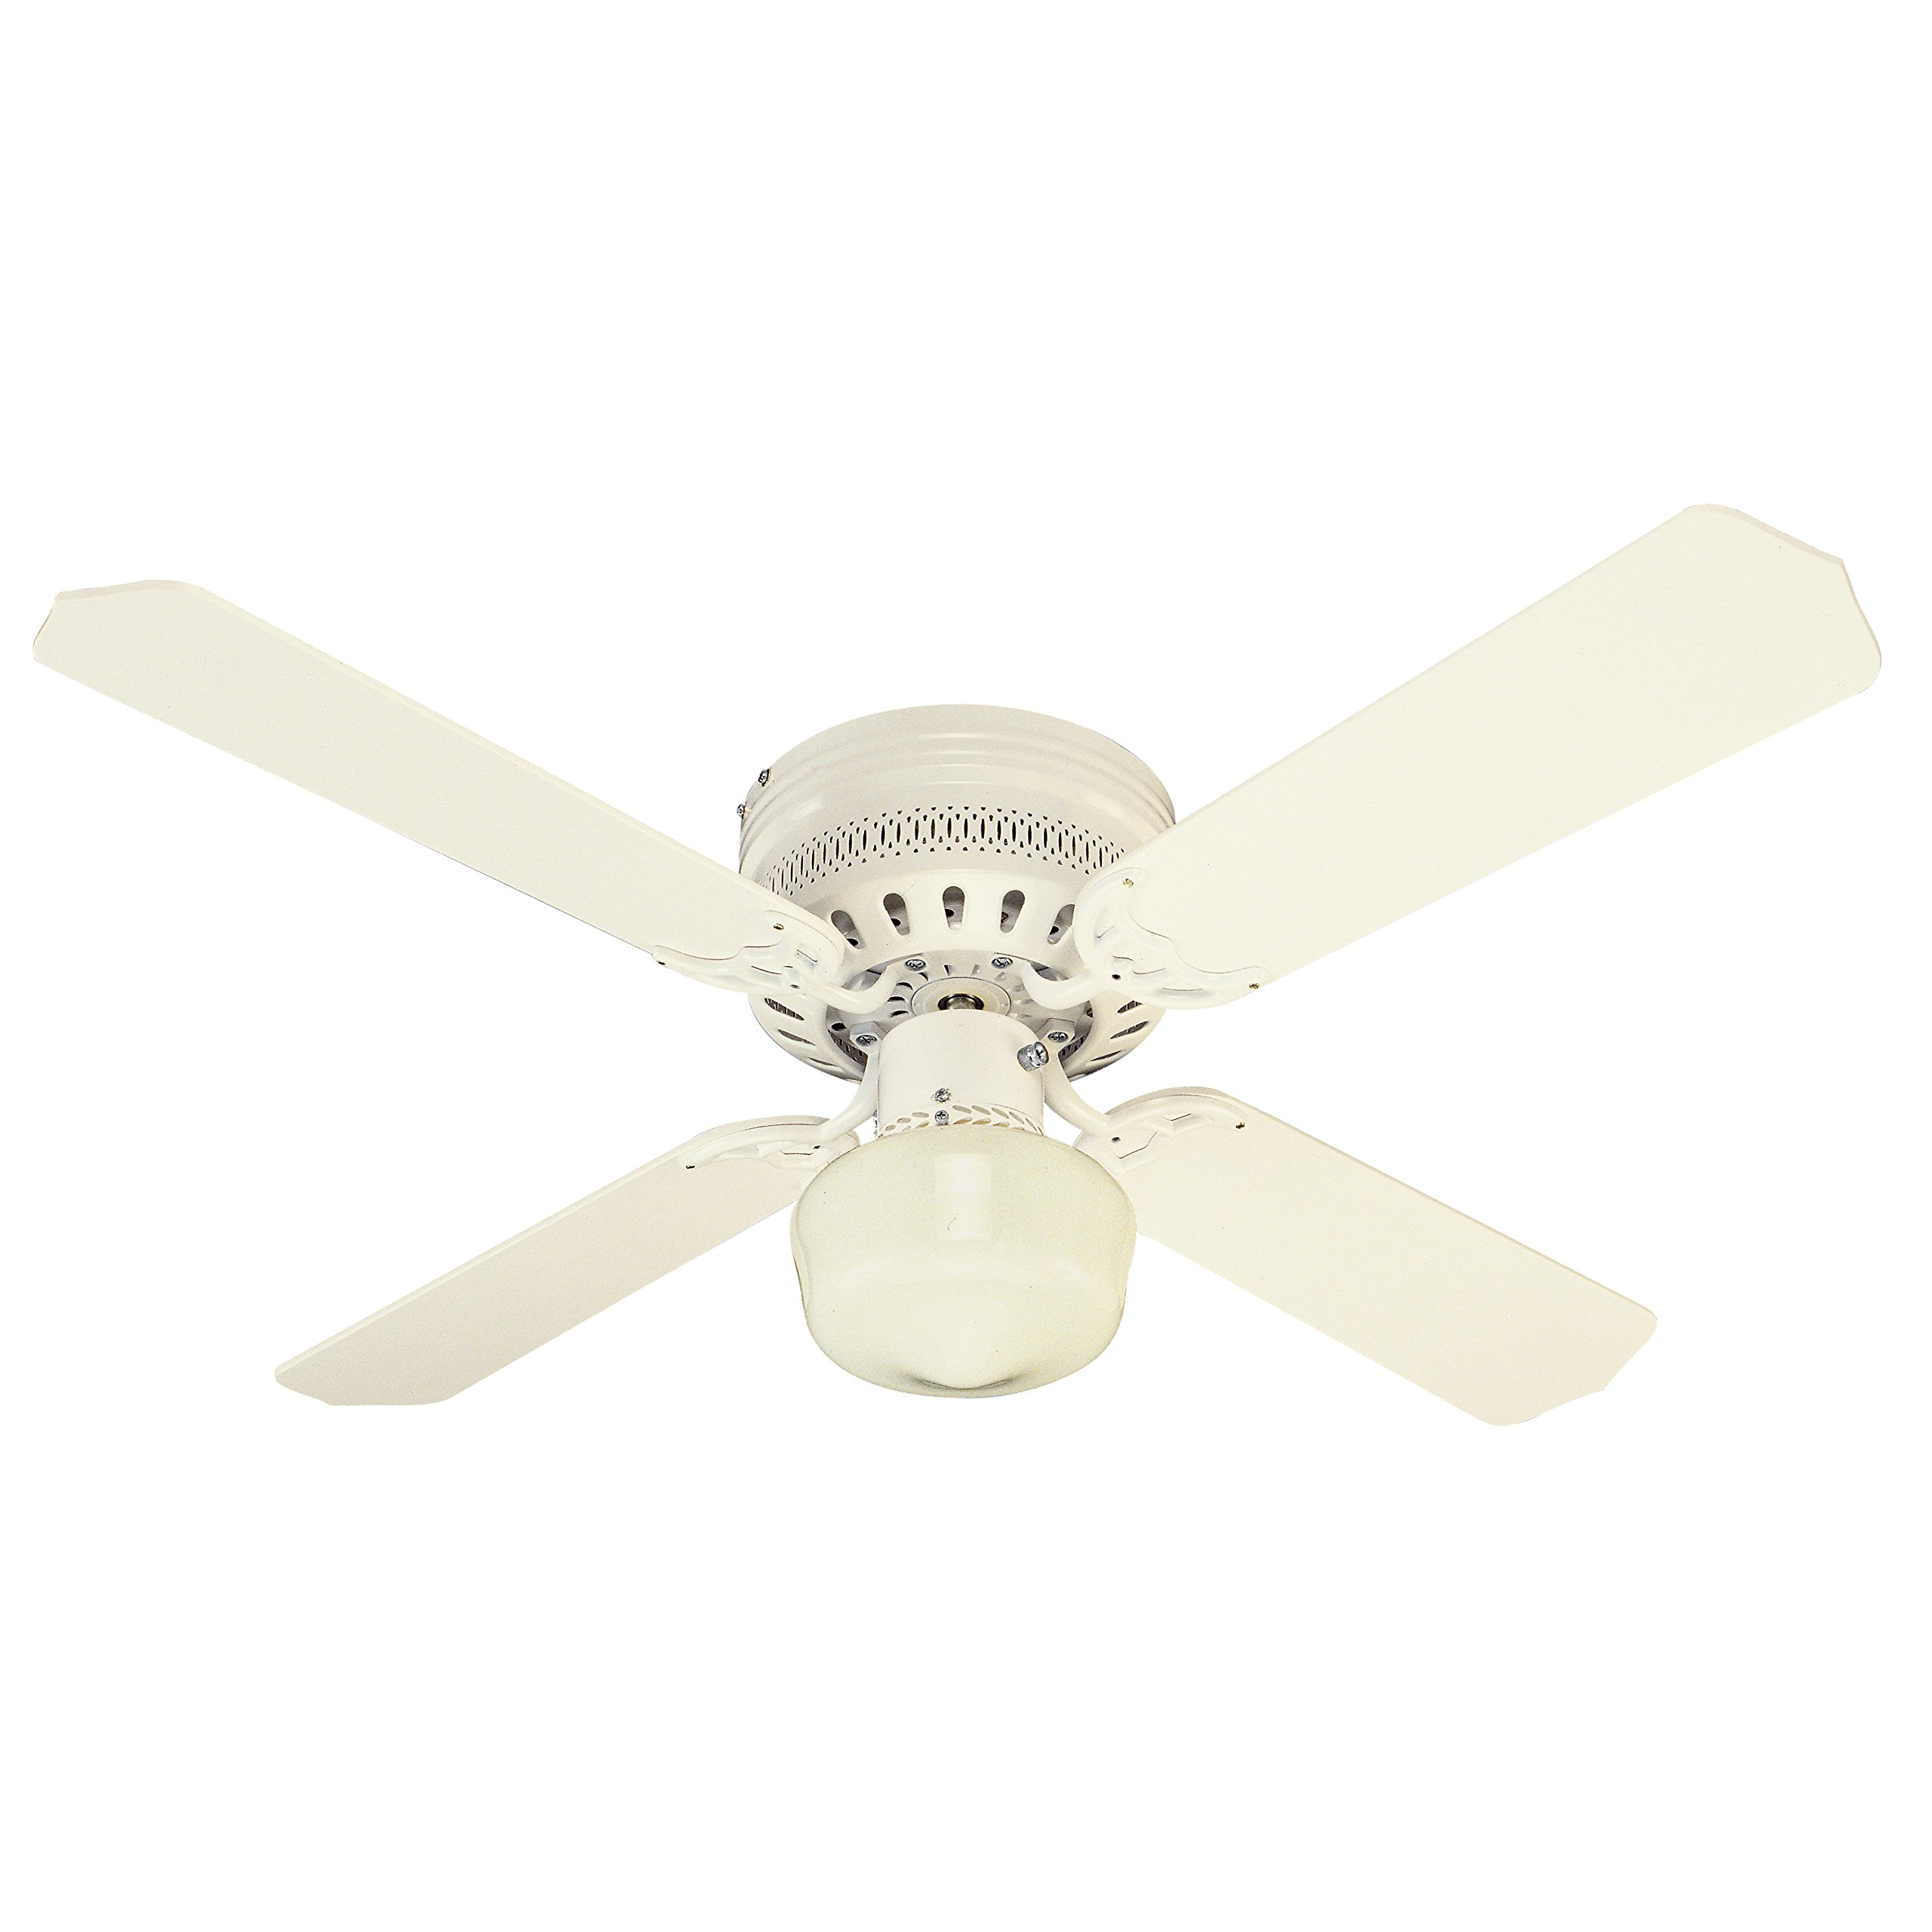 Westinghouse 7812600 Traditional Casanova Supreme 1-Light 4-Blade Indoor Ceiling Fan with Opal Schoolhouse Glass, 42'', White